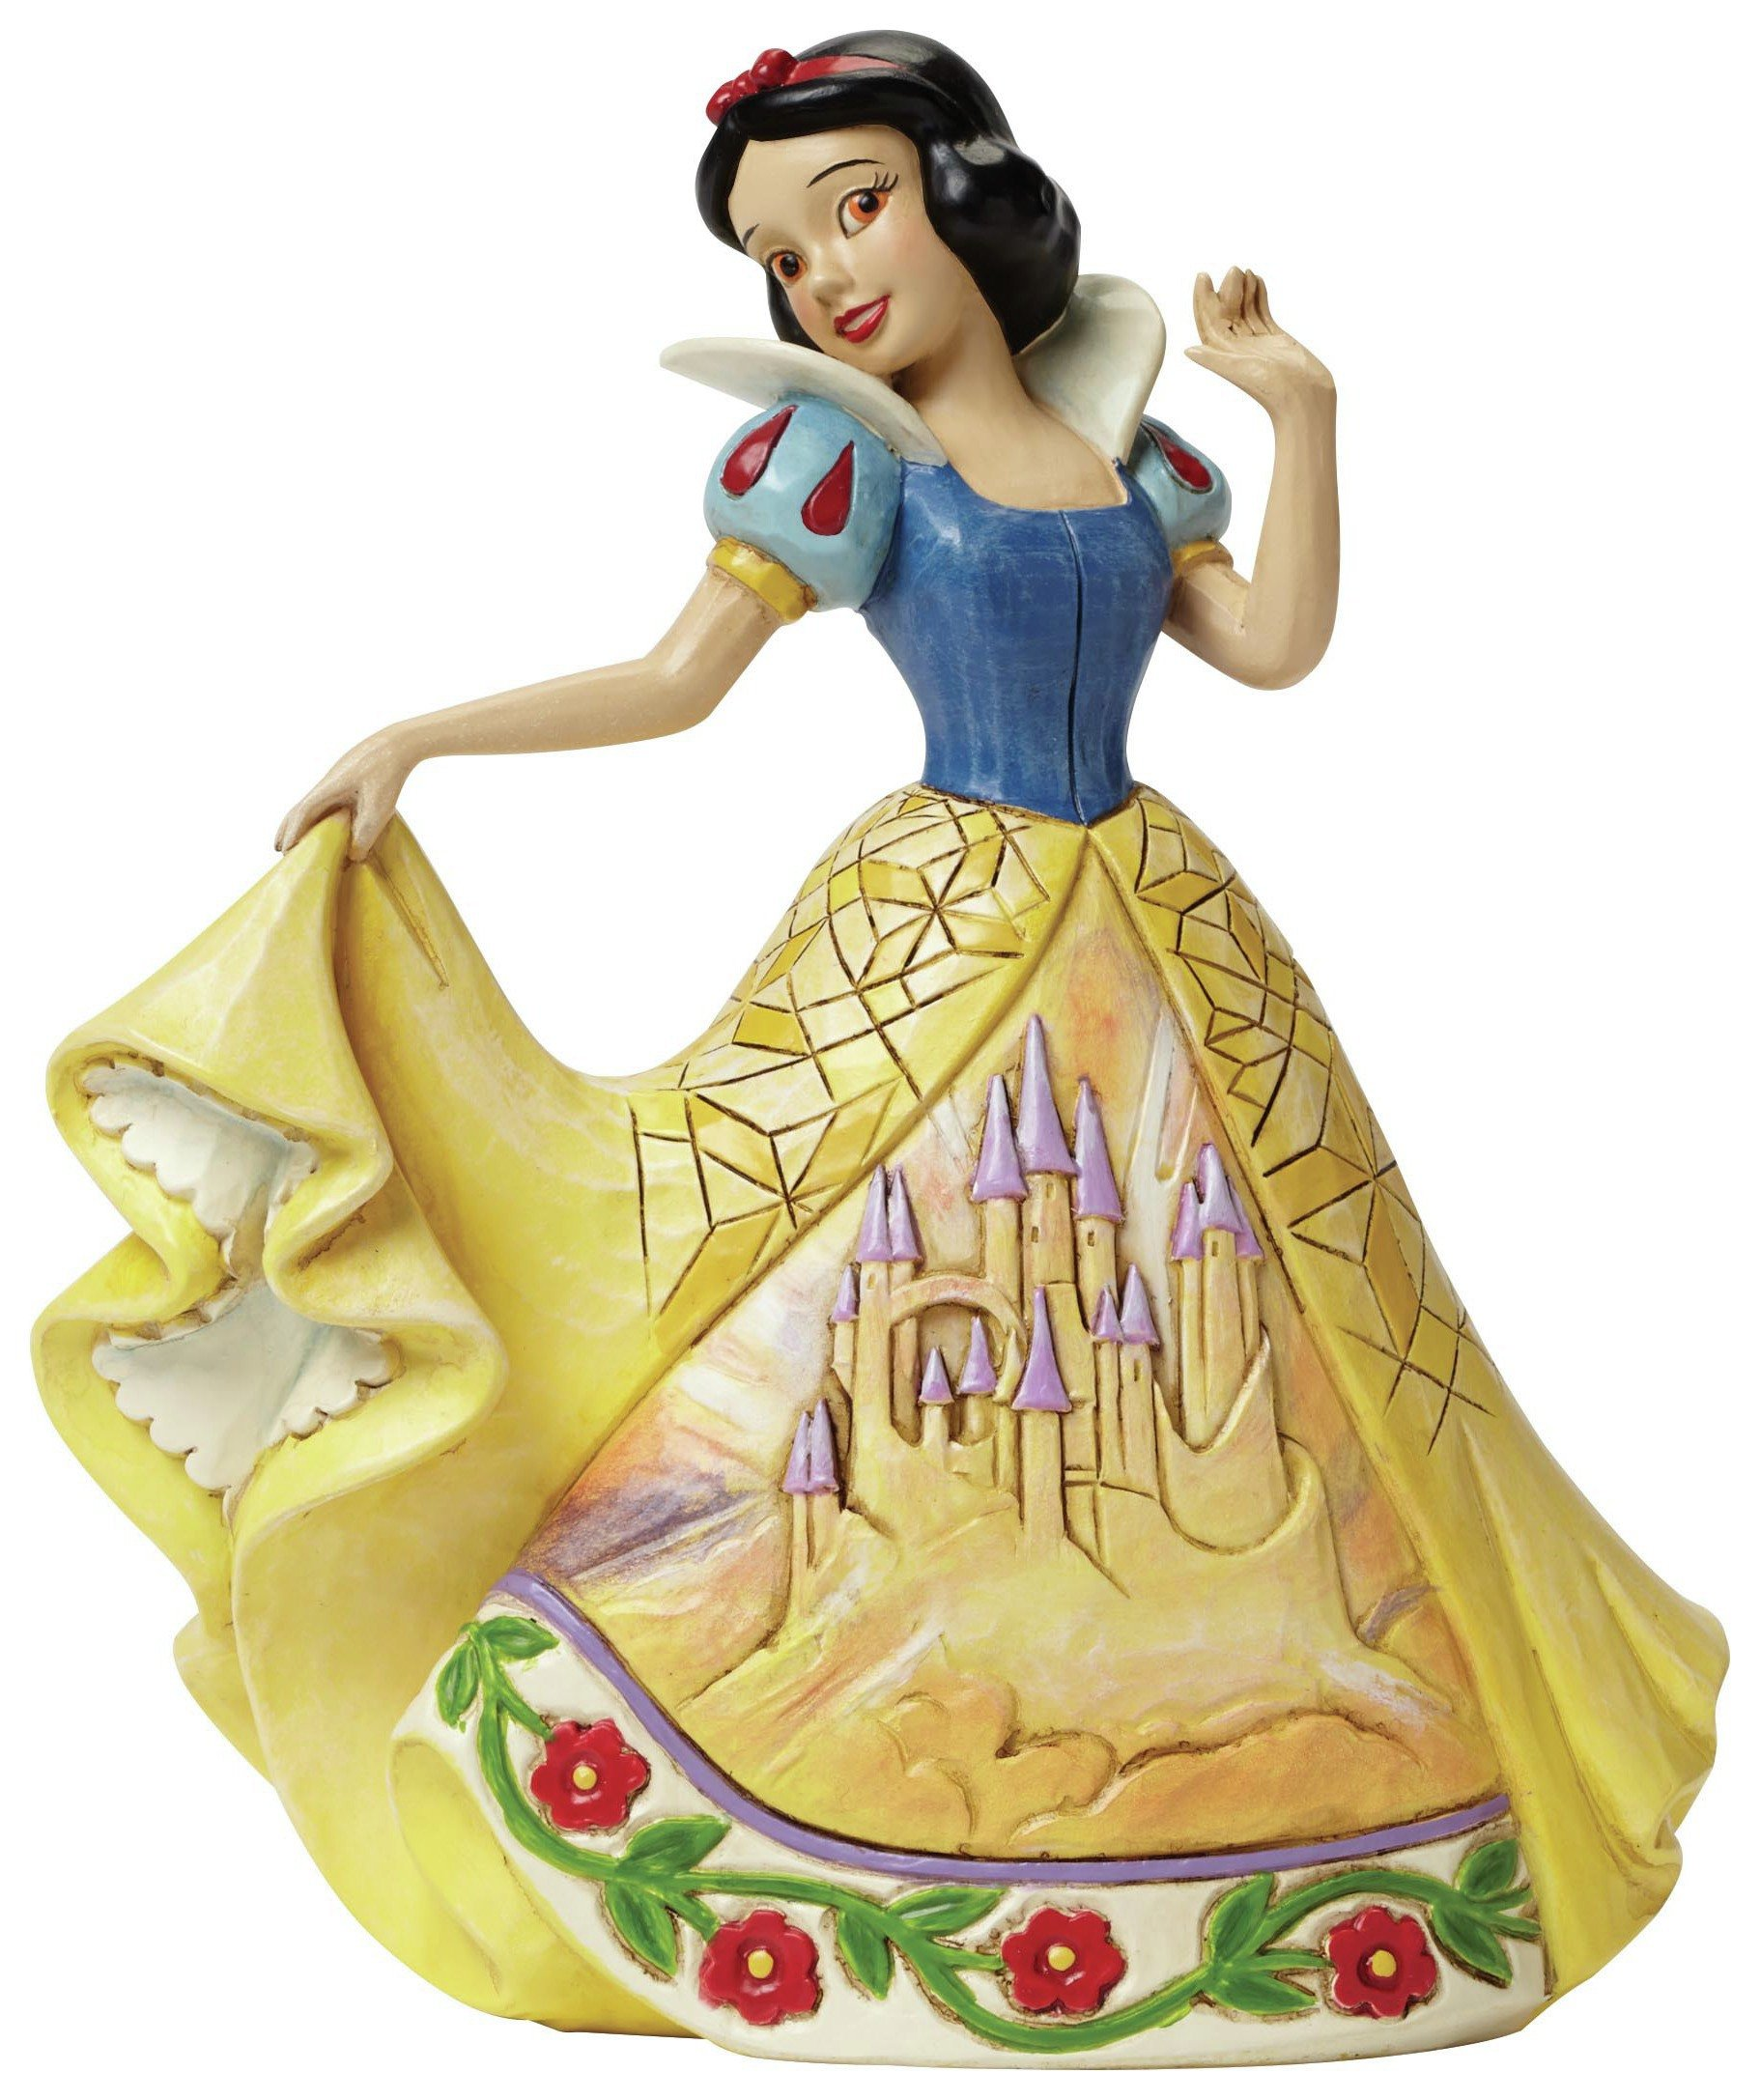 Image of Disney Traditions Castle in the Clouds Snow White Figurine.